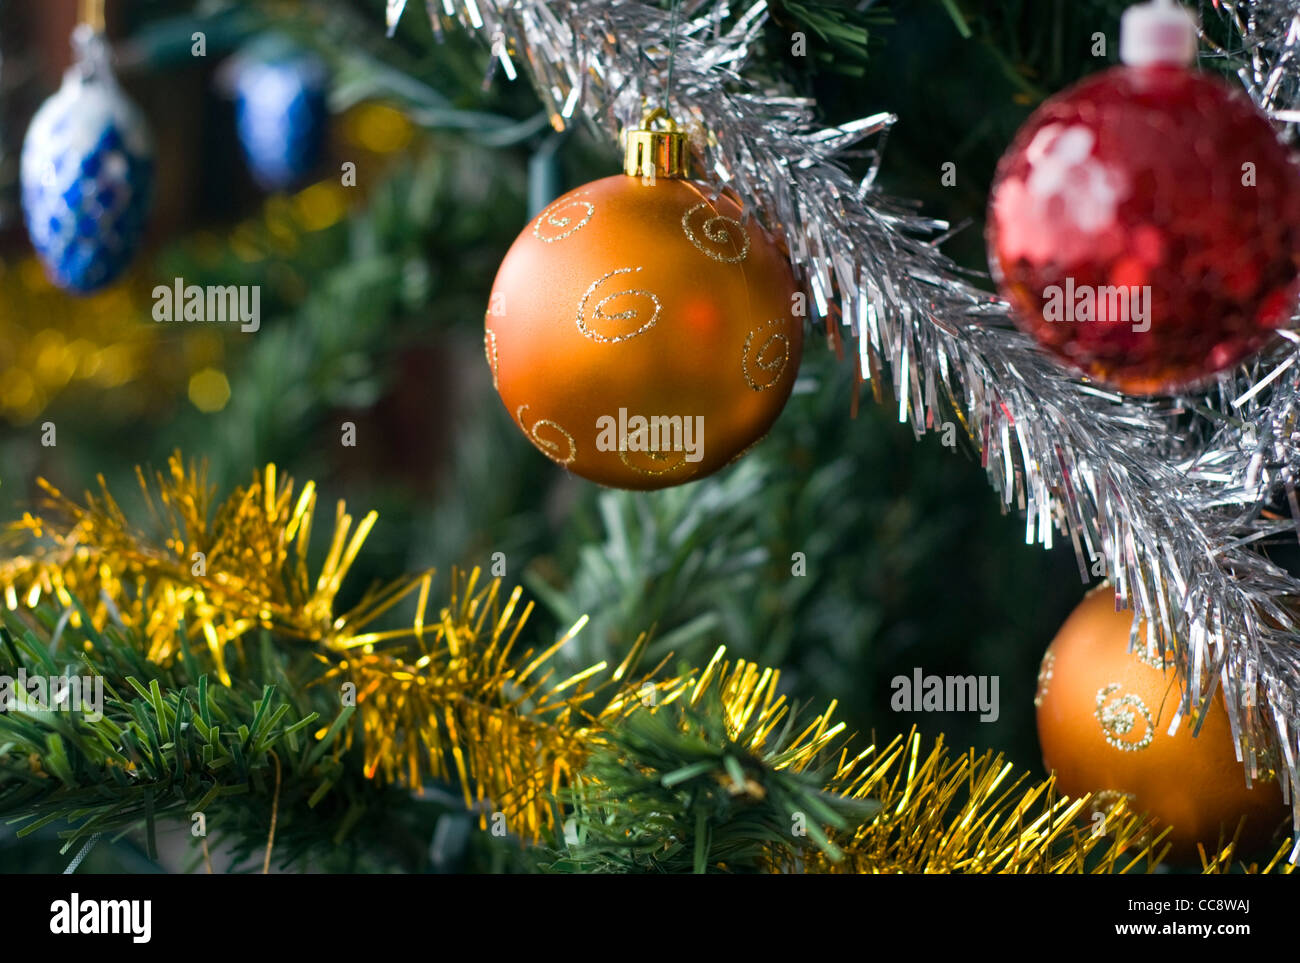 Tinsel Baubles Stock Photos & Tinsel Baubles Stock Images - Alamy